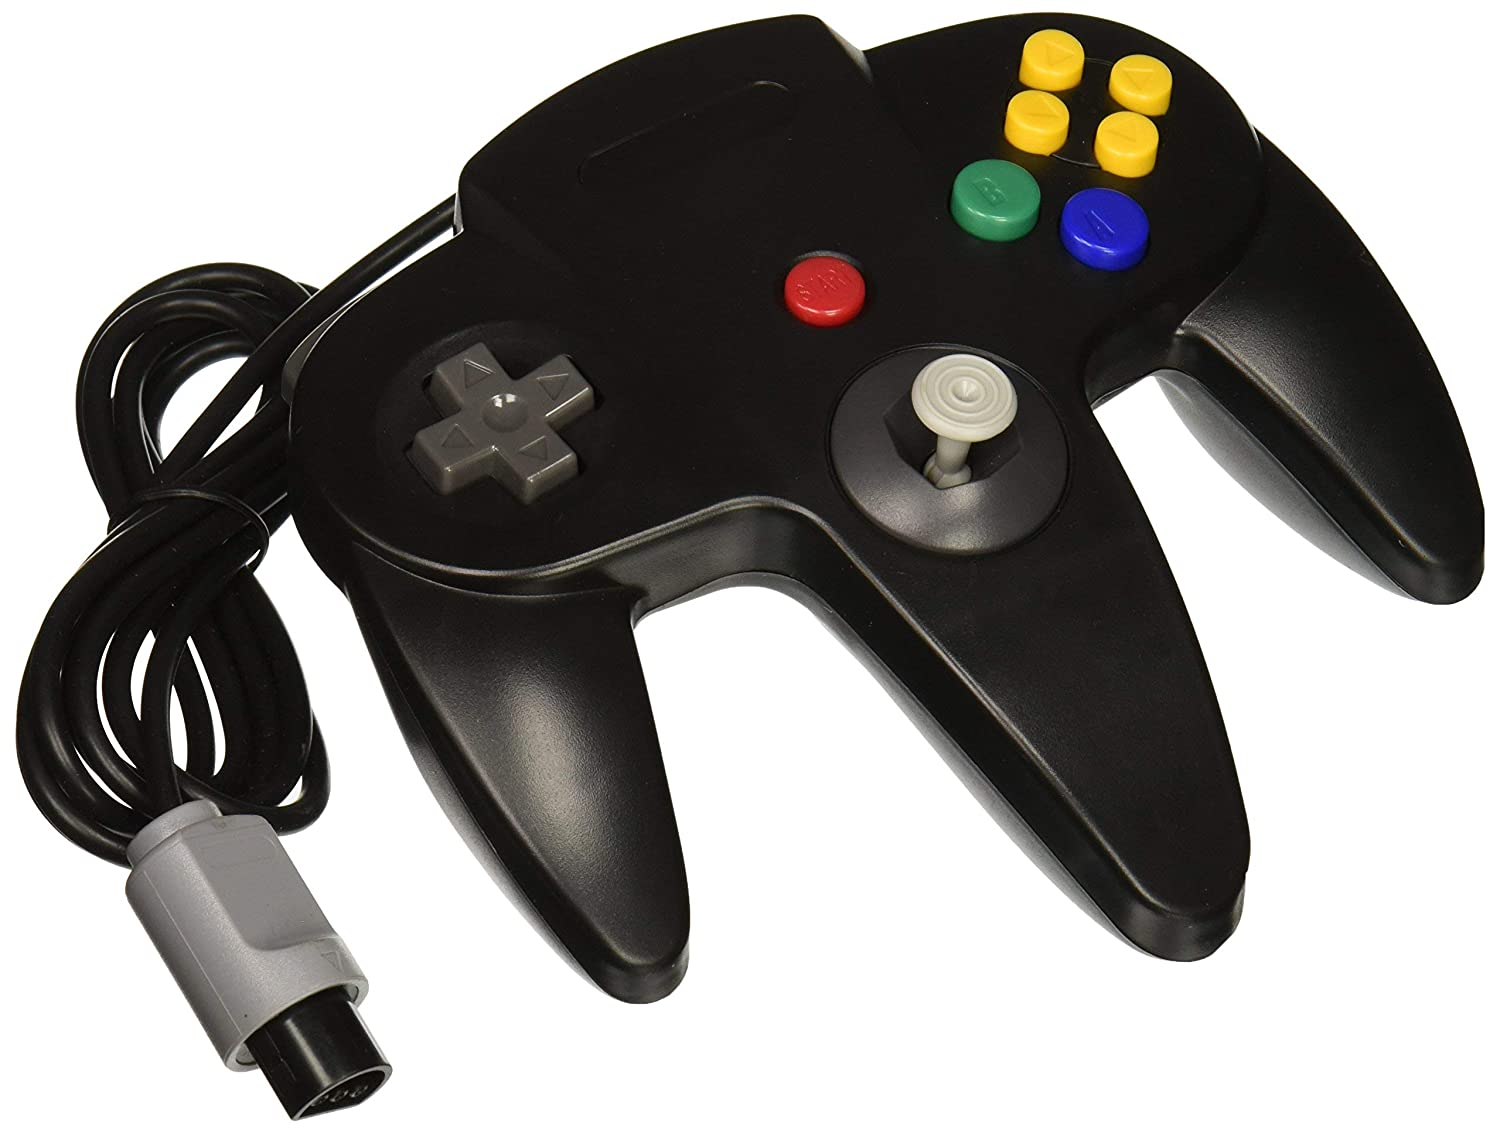 OSTENT Wired Controller Gamepad Joystick Joypad for Nintendo 64 N64 Console Video Games – Black (Certified Refurbished)